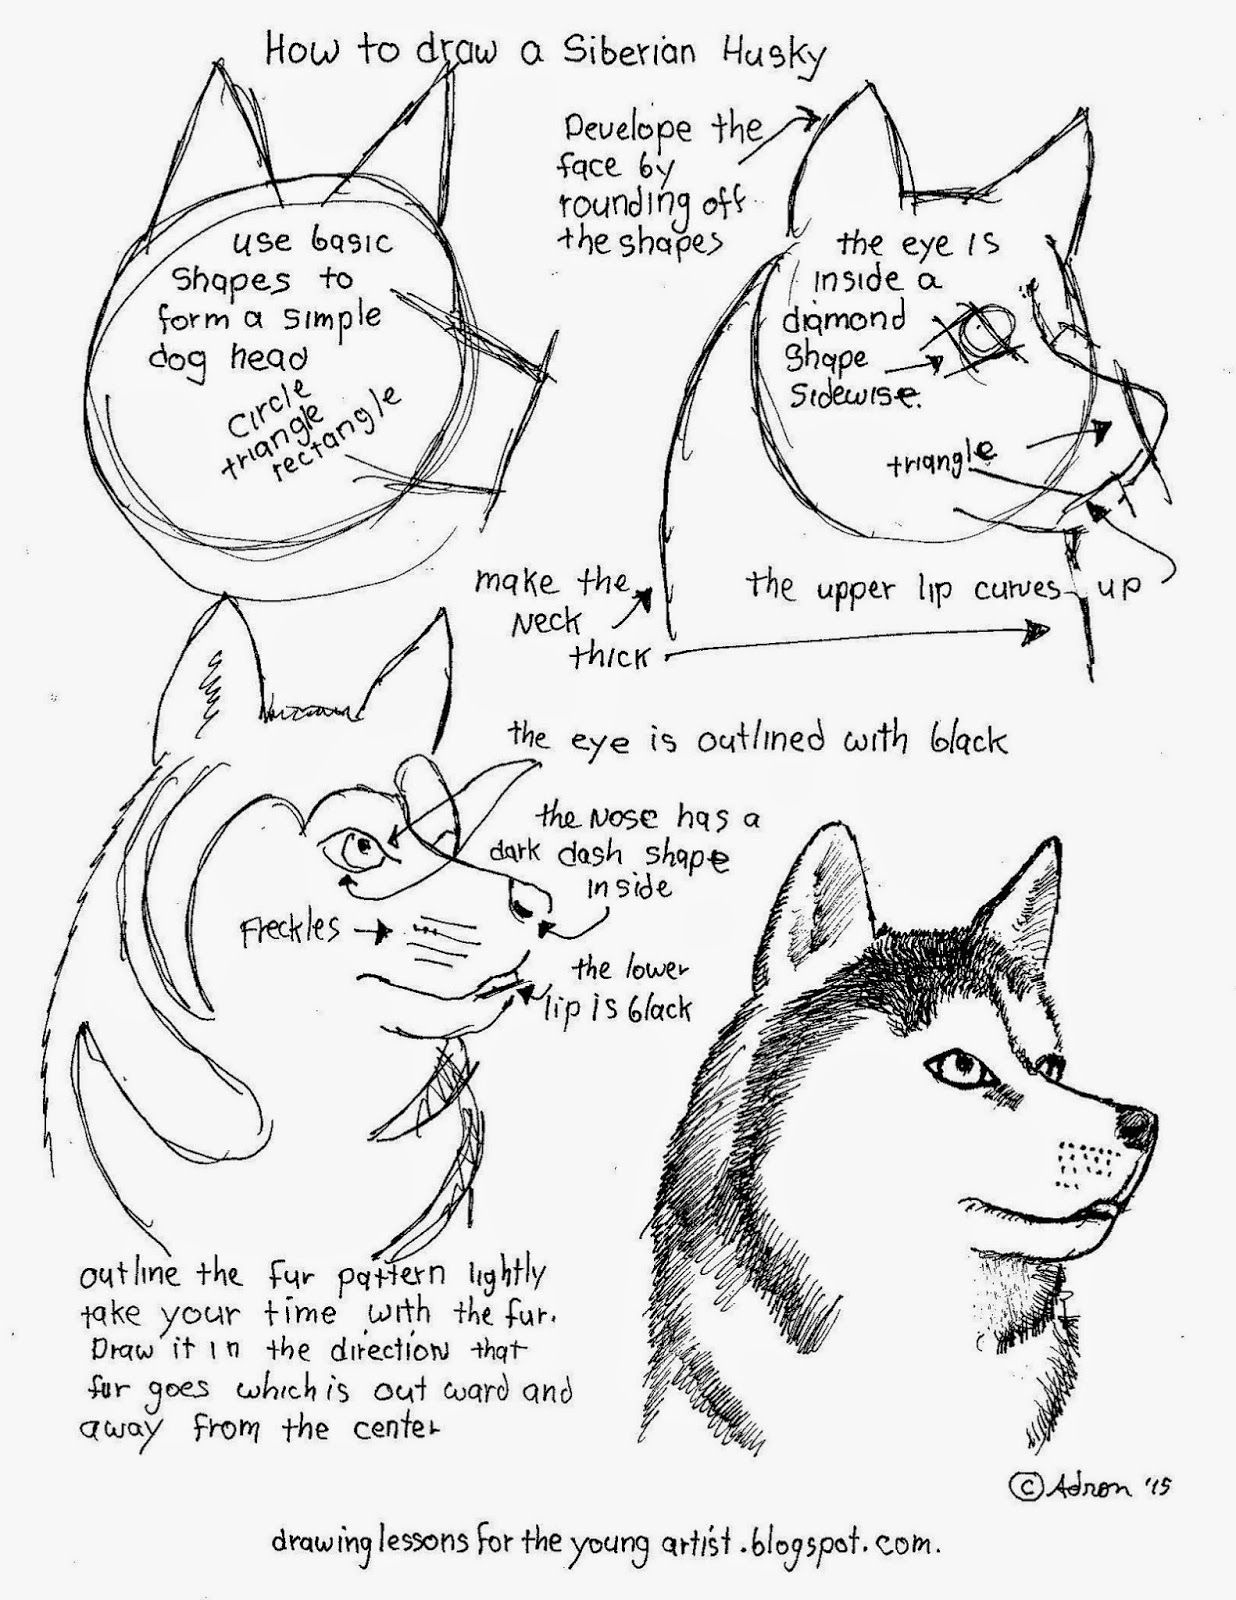 How To Draw Worksheets For The Young Artist: How To Draw A Siberian - Free Printable Drawing Worksheets